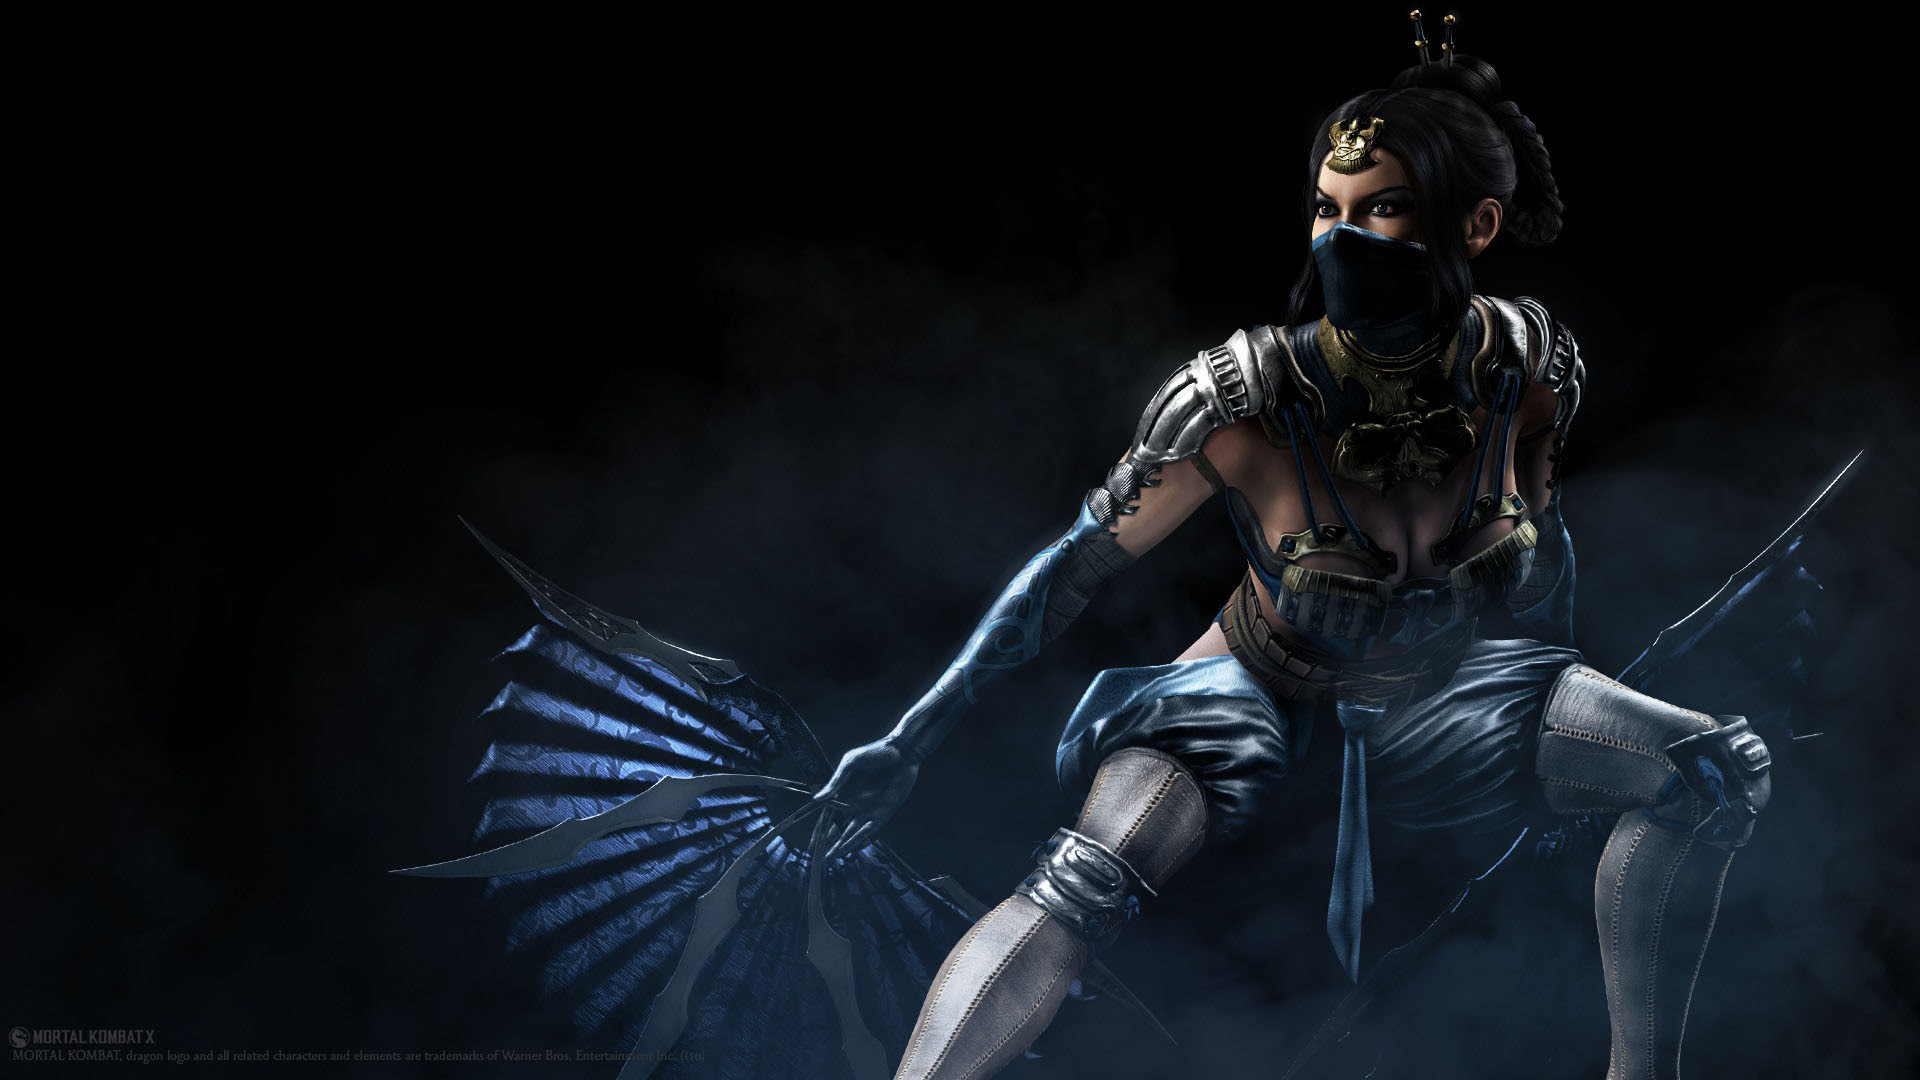 Kitana From The Mortal Kombat Series